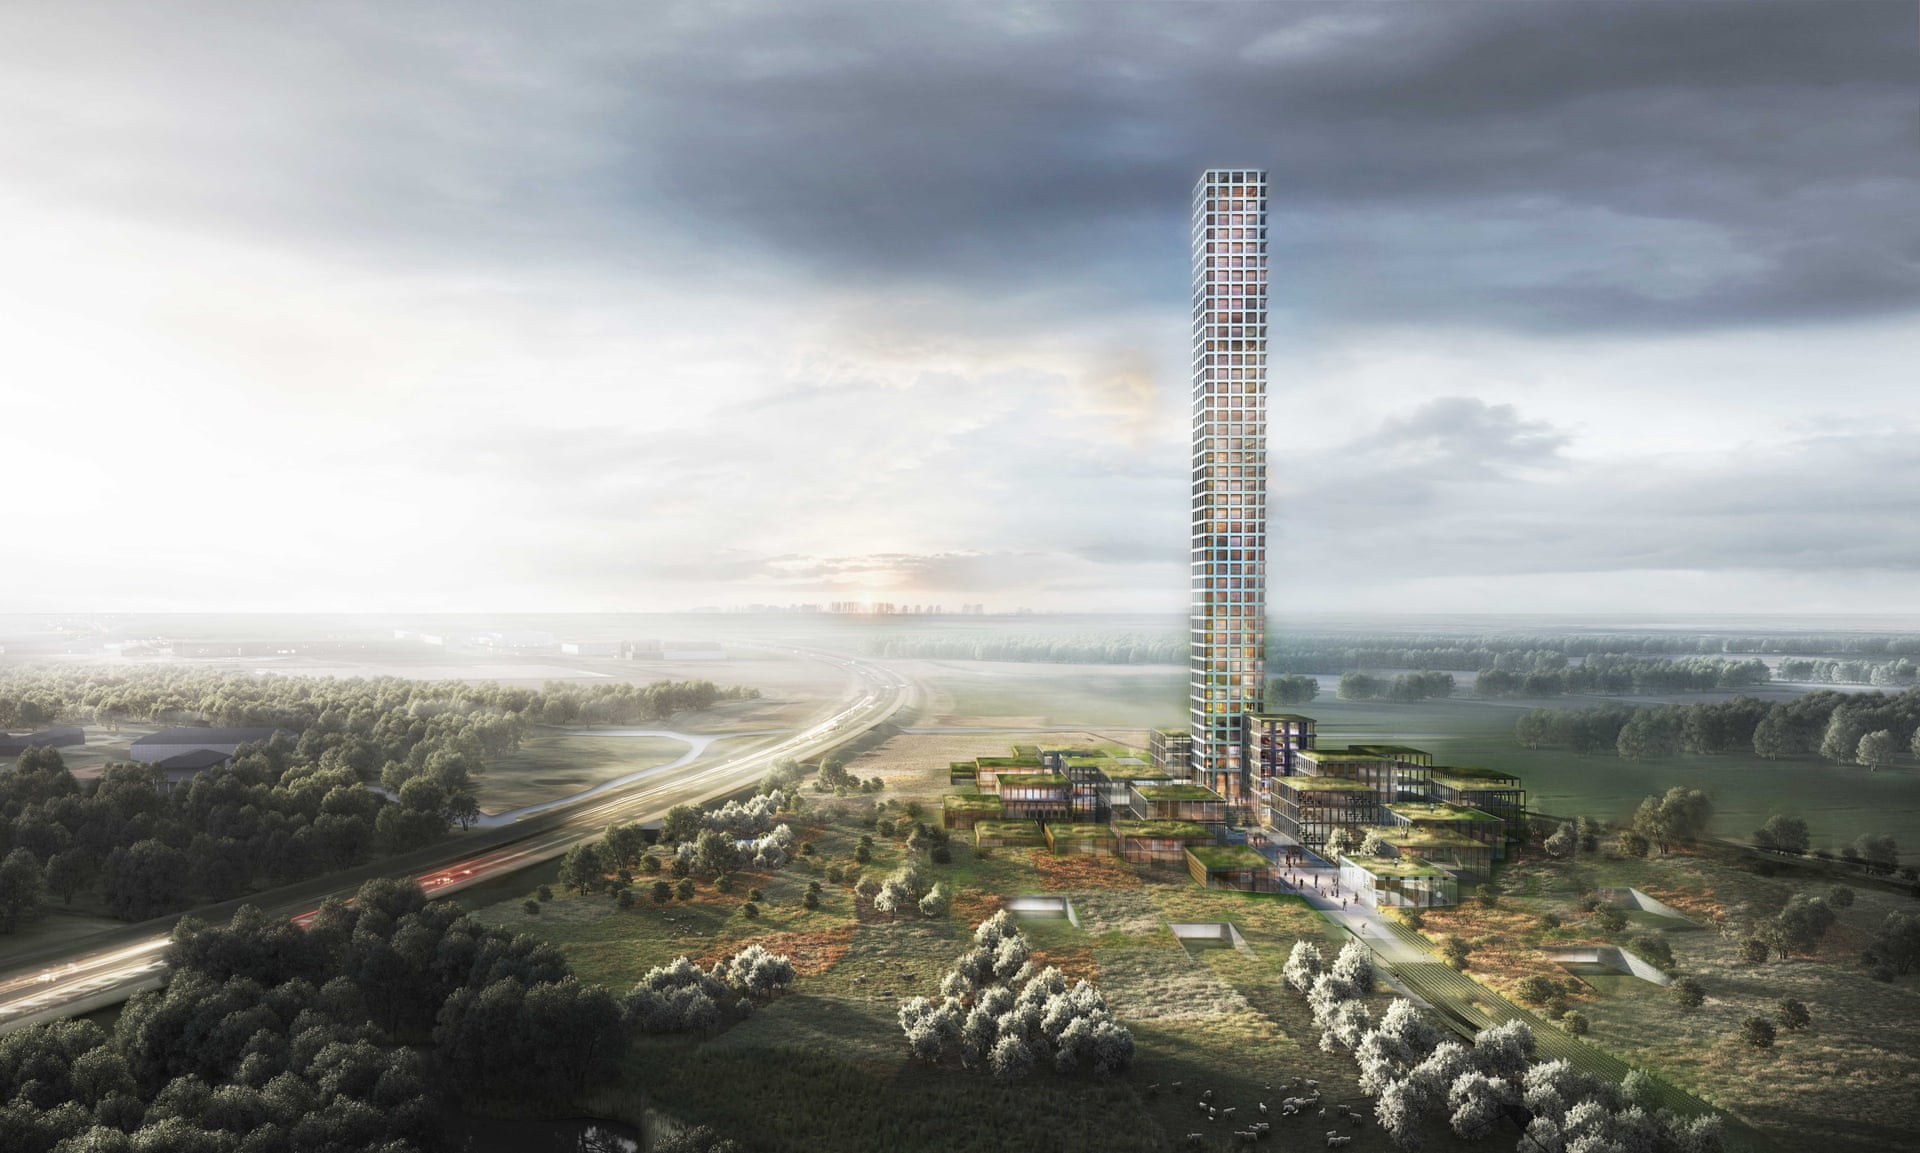 Rendering of a tower in a field